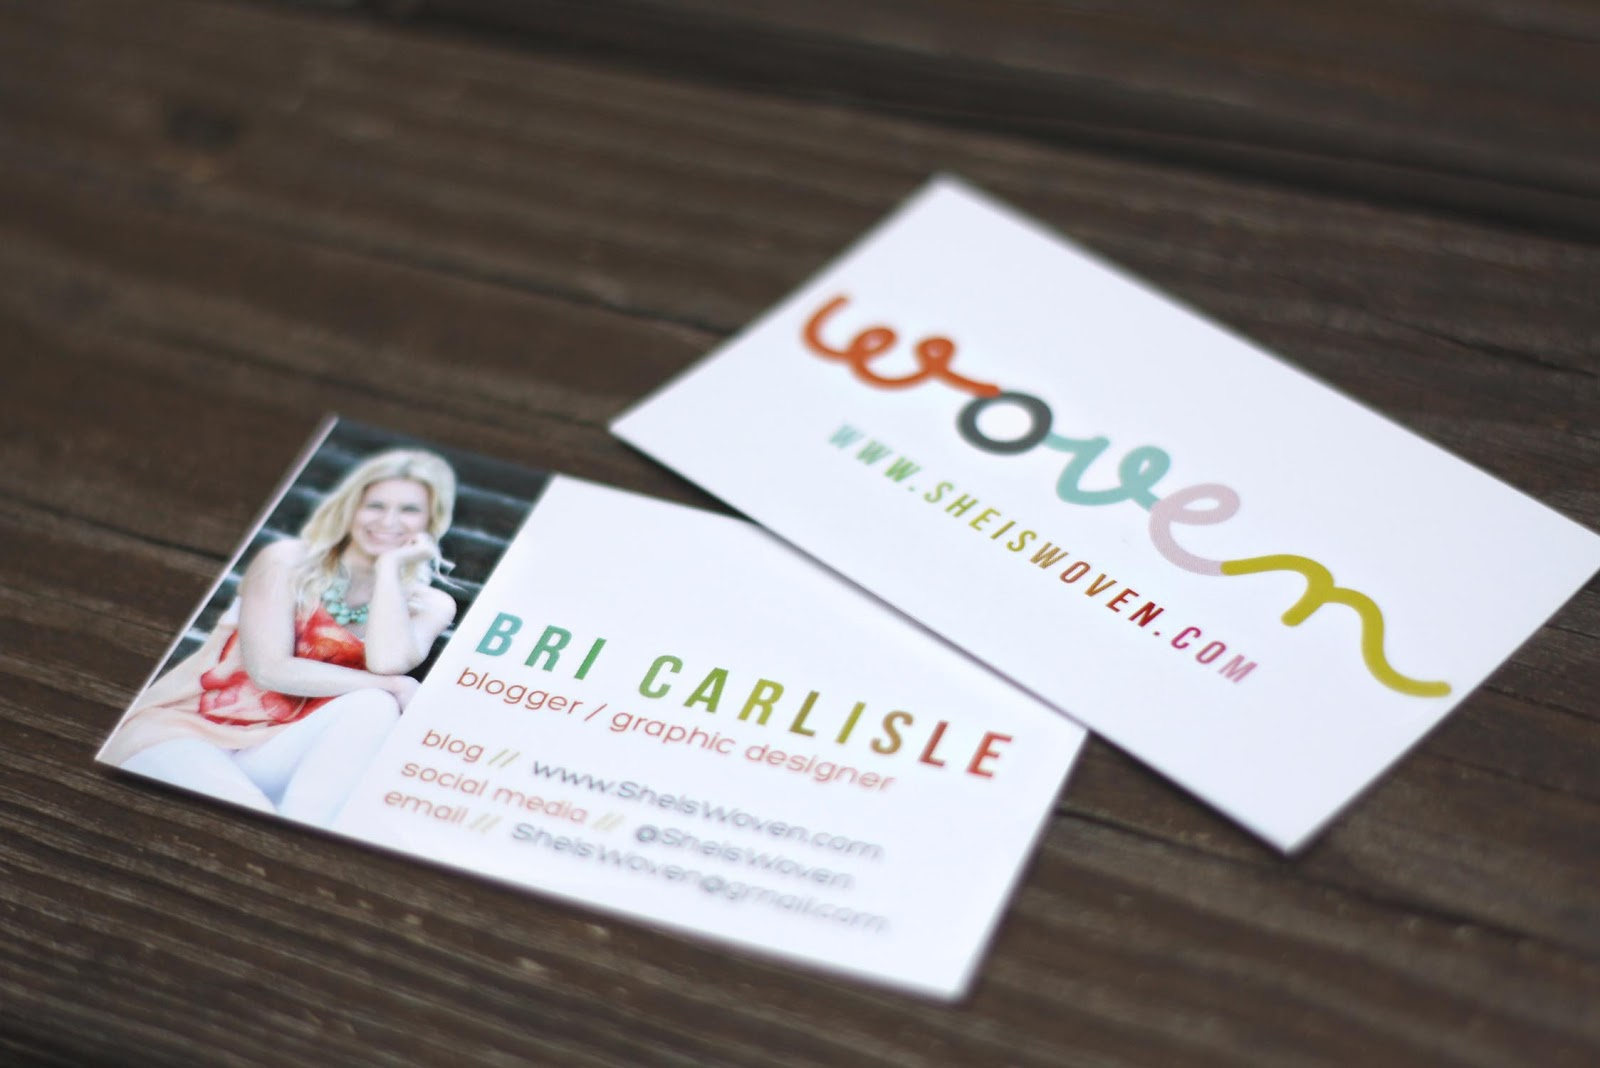 Lovely Image Of Business Cards Vistaprint - The Business Cards ...